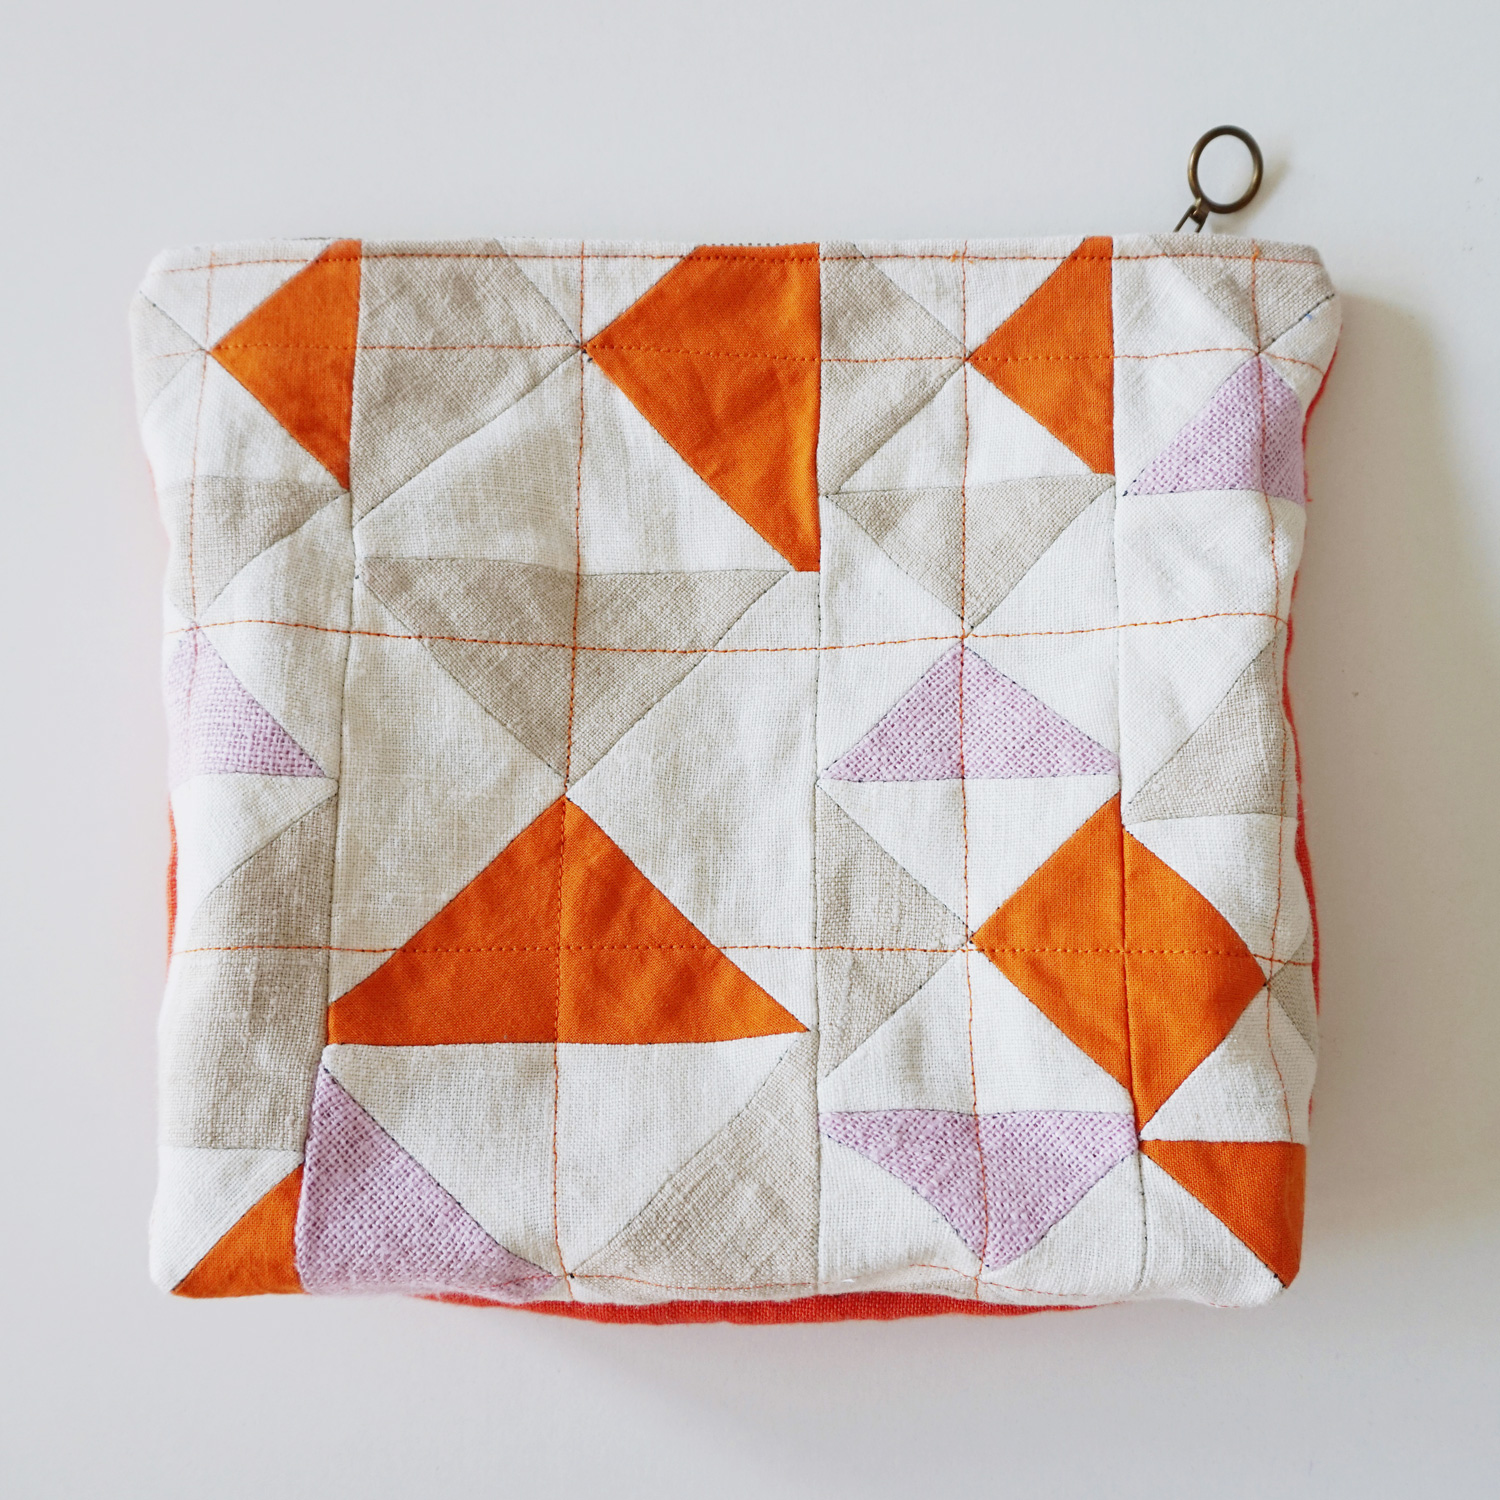 A fresh and bright little zipper pouch for storing your current knitting project, collection of pens or travel essentials.